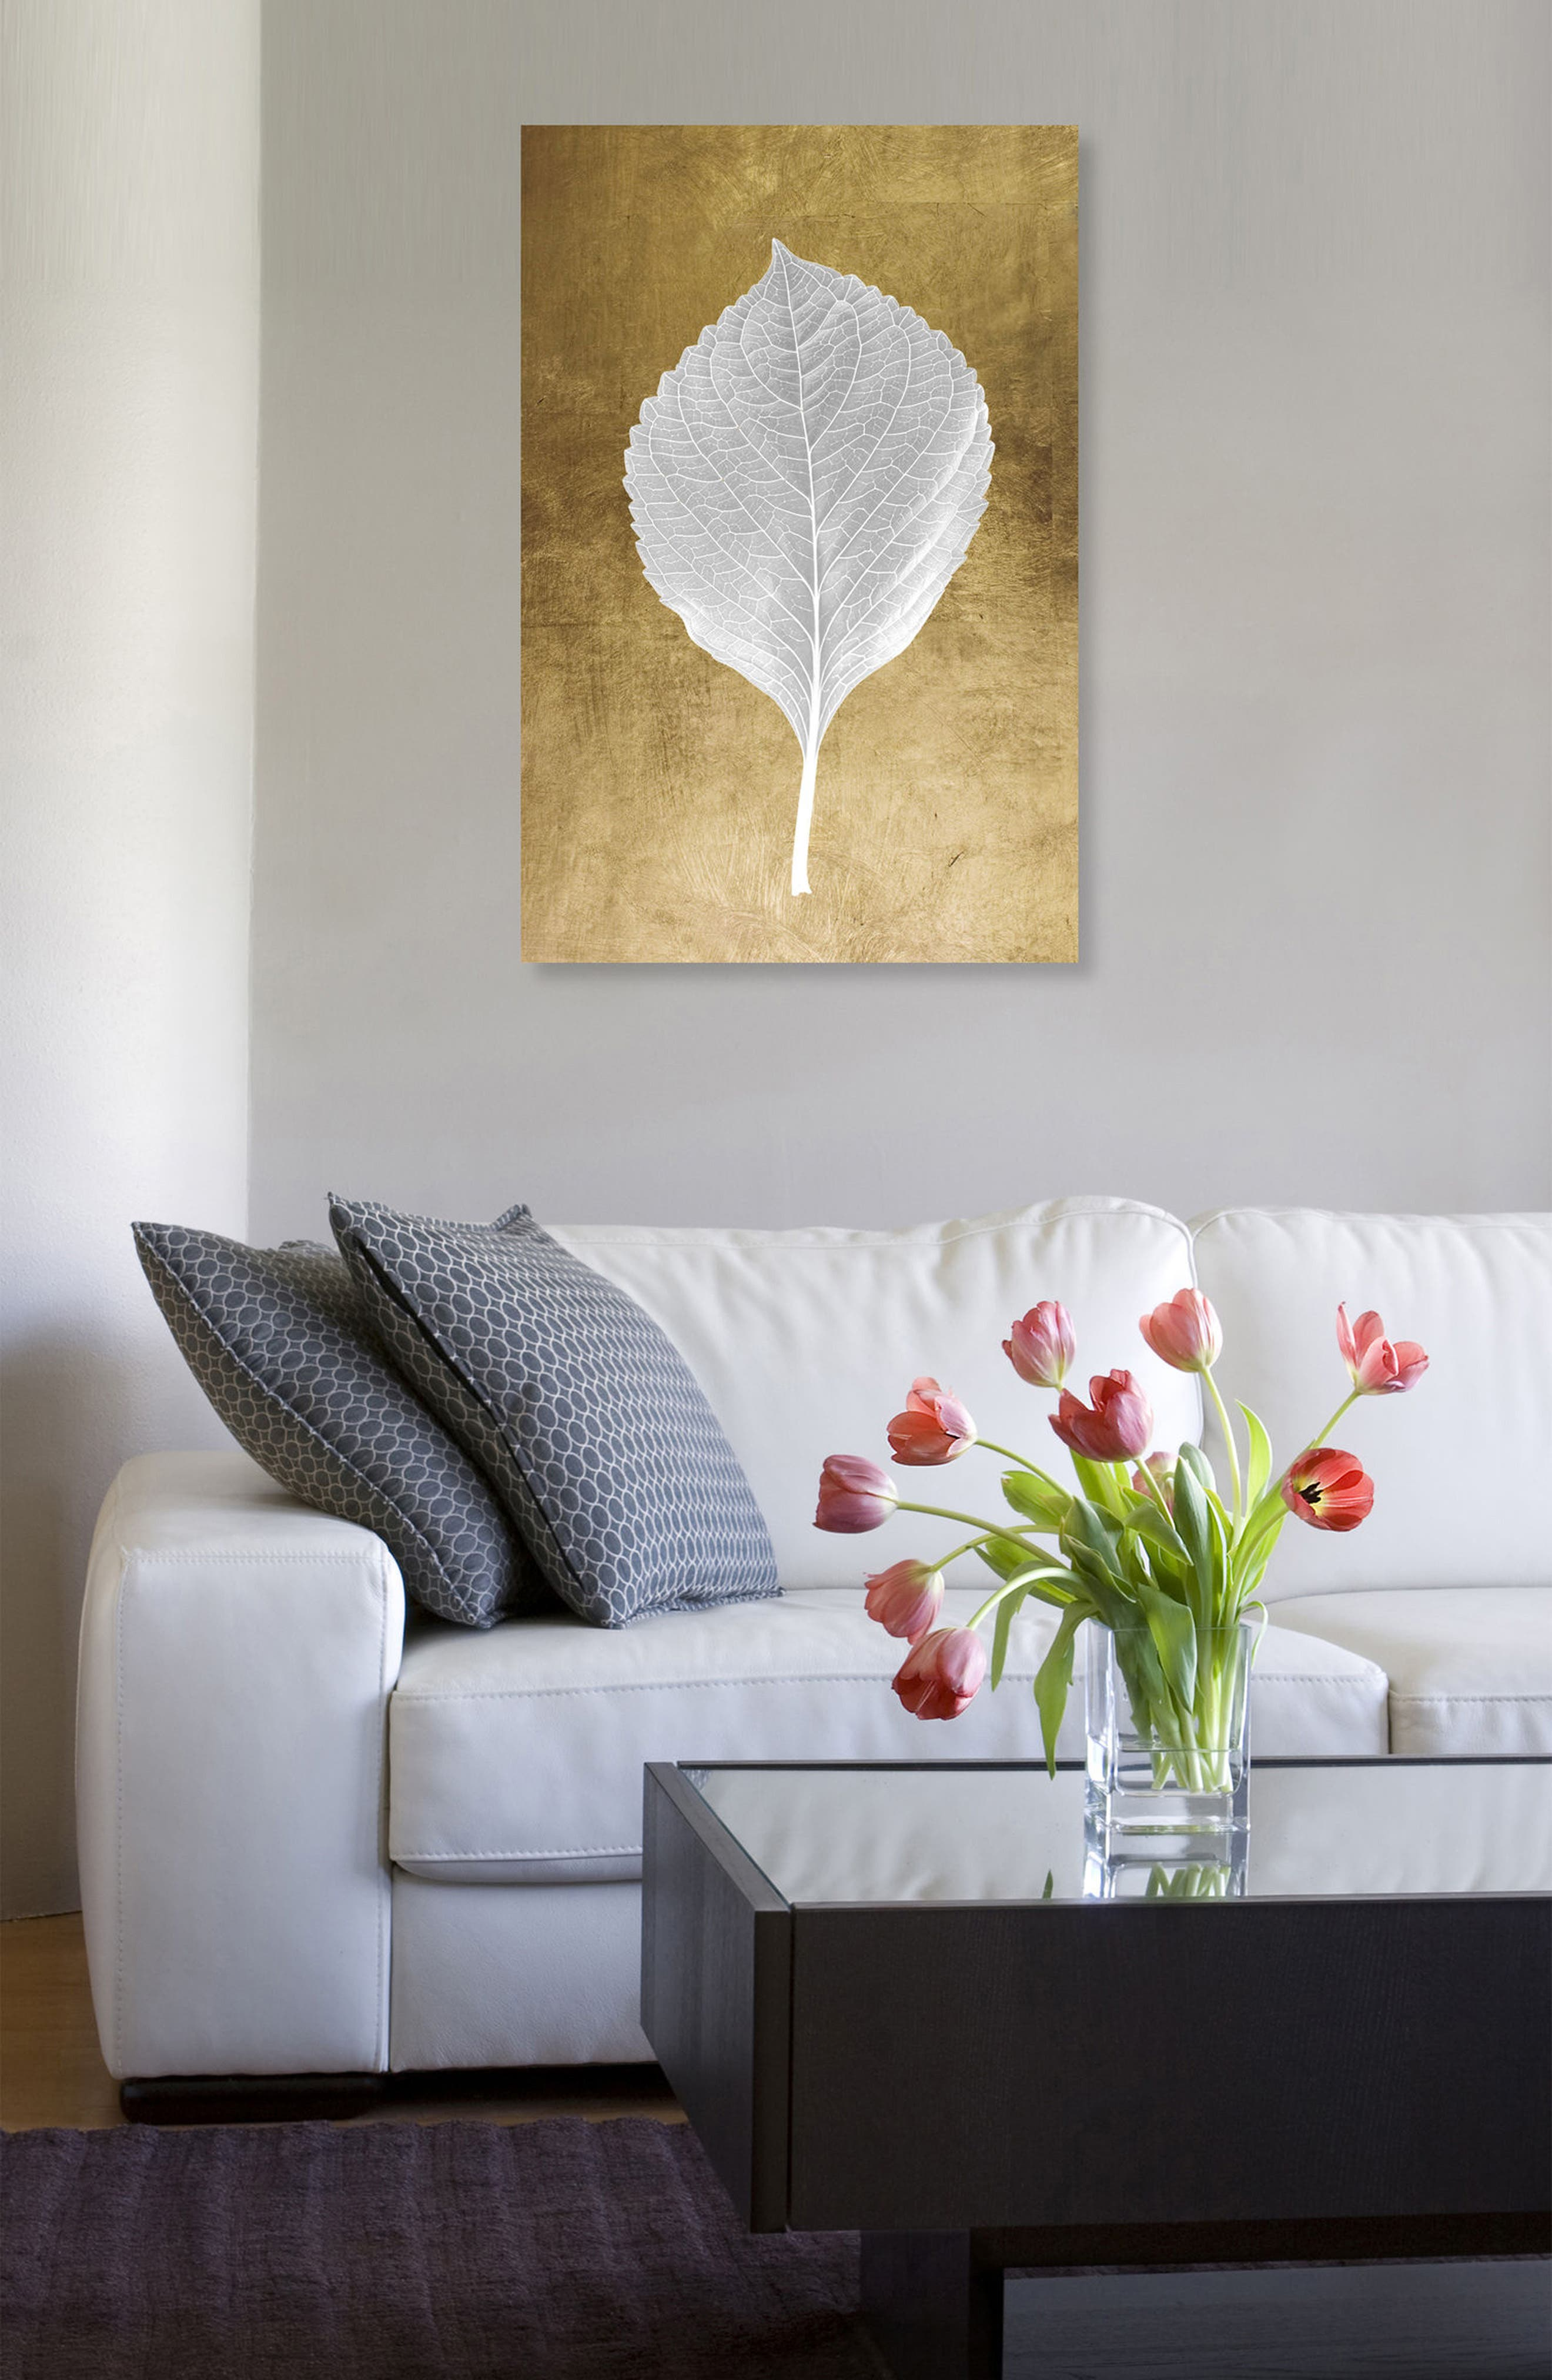 Leaf in Gold I Canvas Wall Art,                             Alternate thumbnail 2, color,                             Metallic Gold